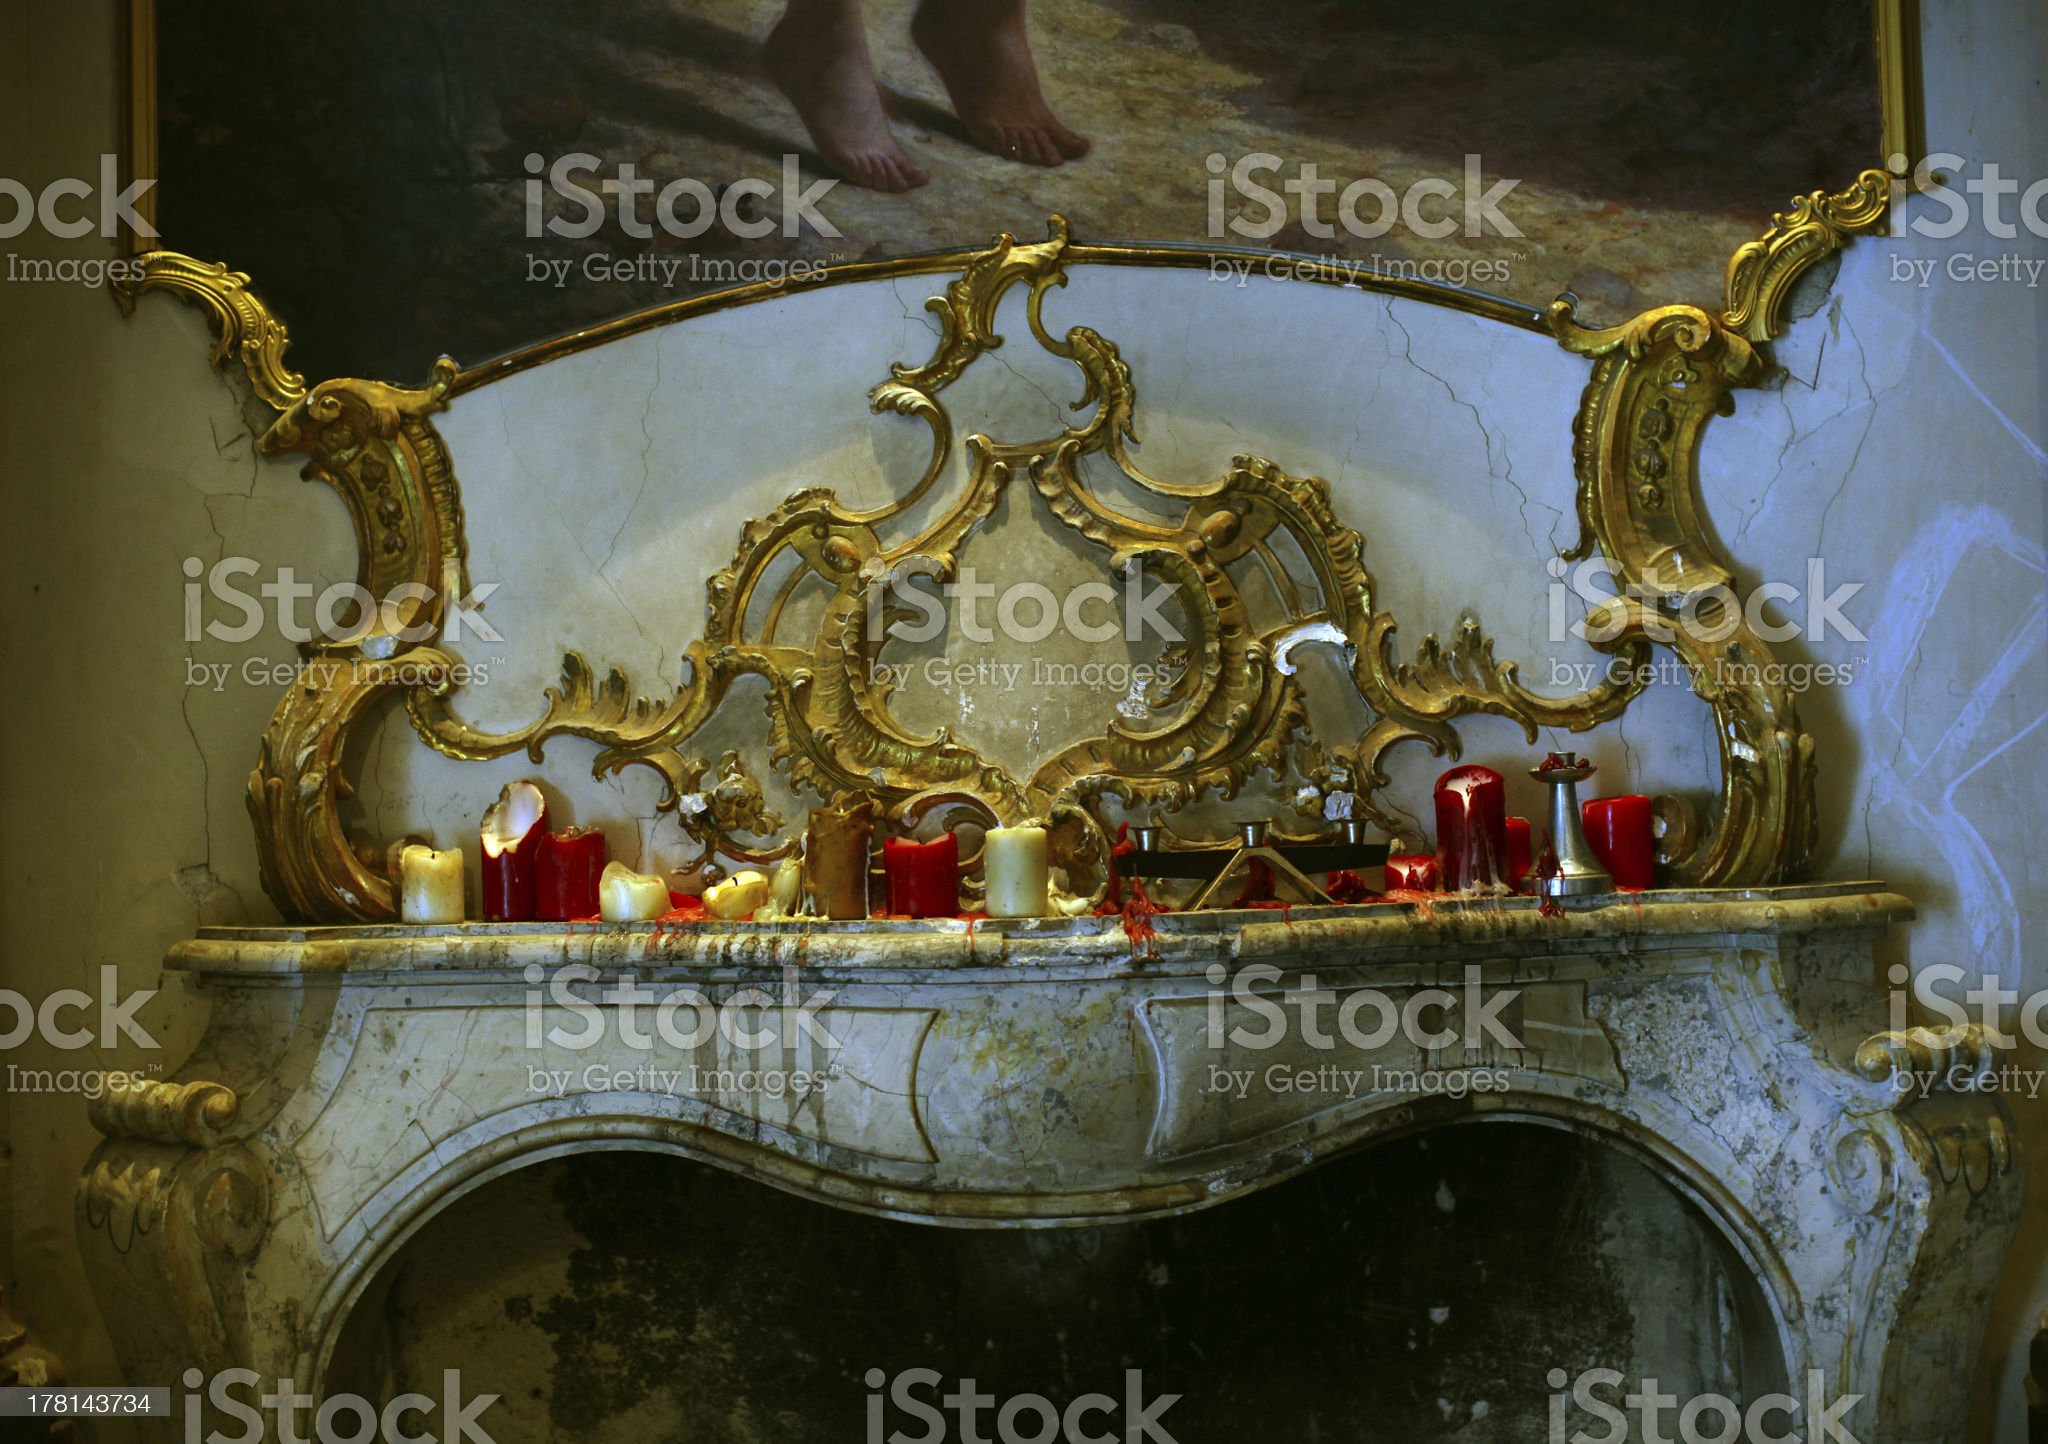 Fireplace mantel or mantelpiece made of marble with candles royalty-free stock photo